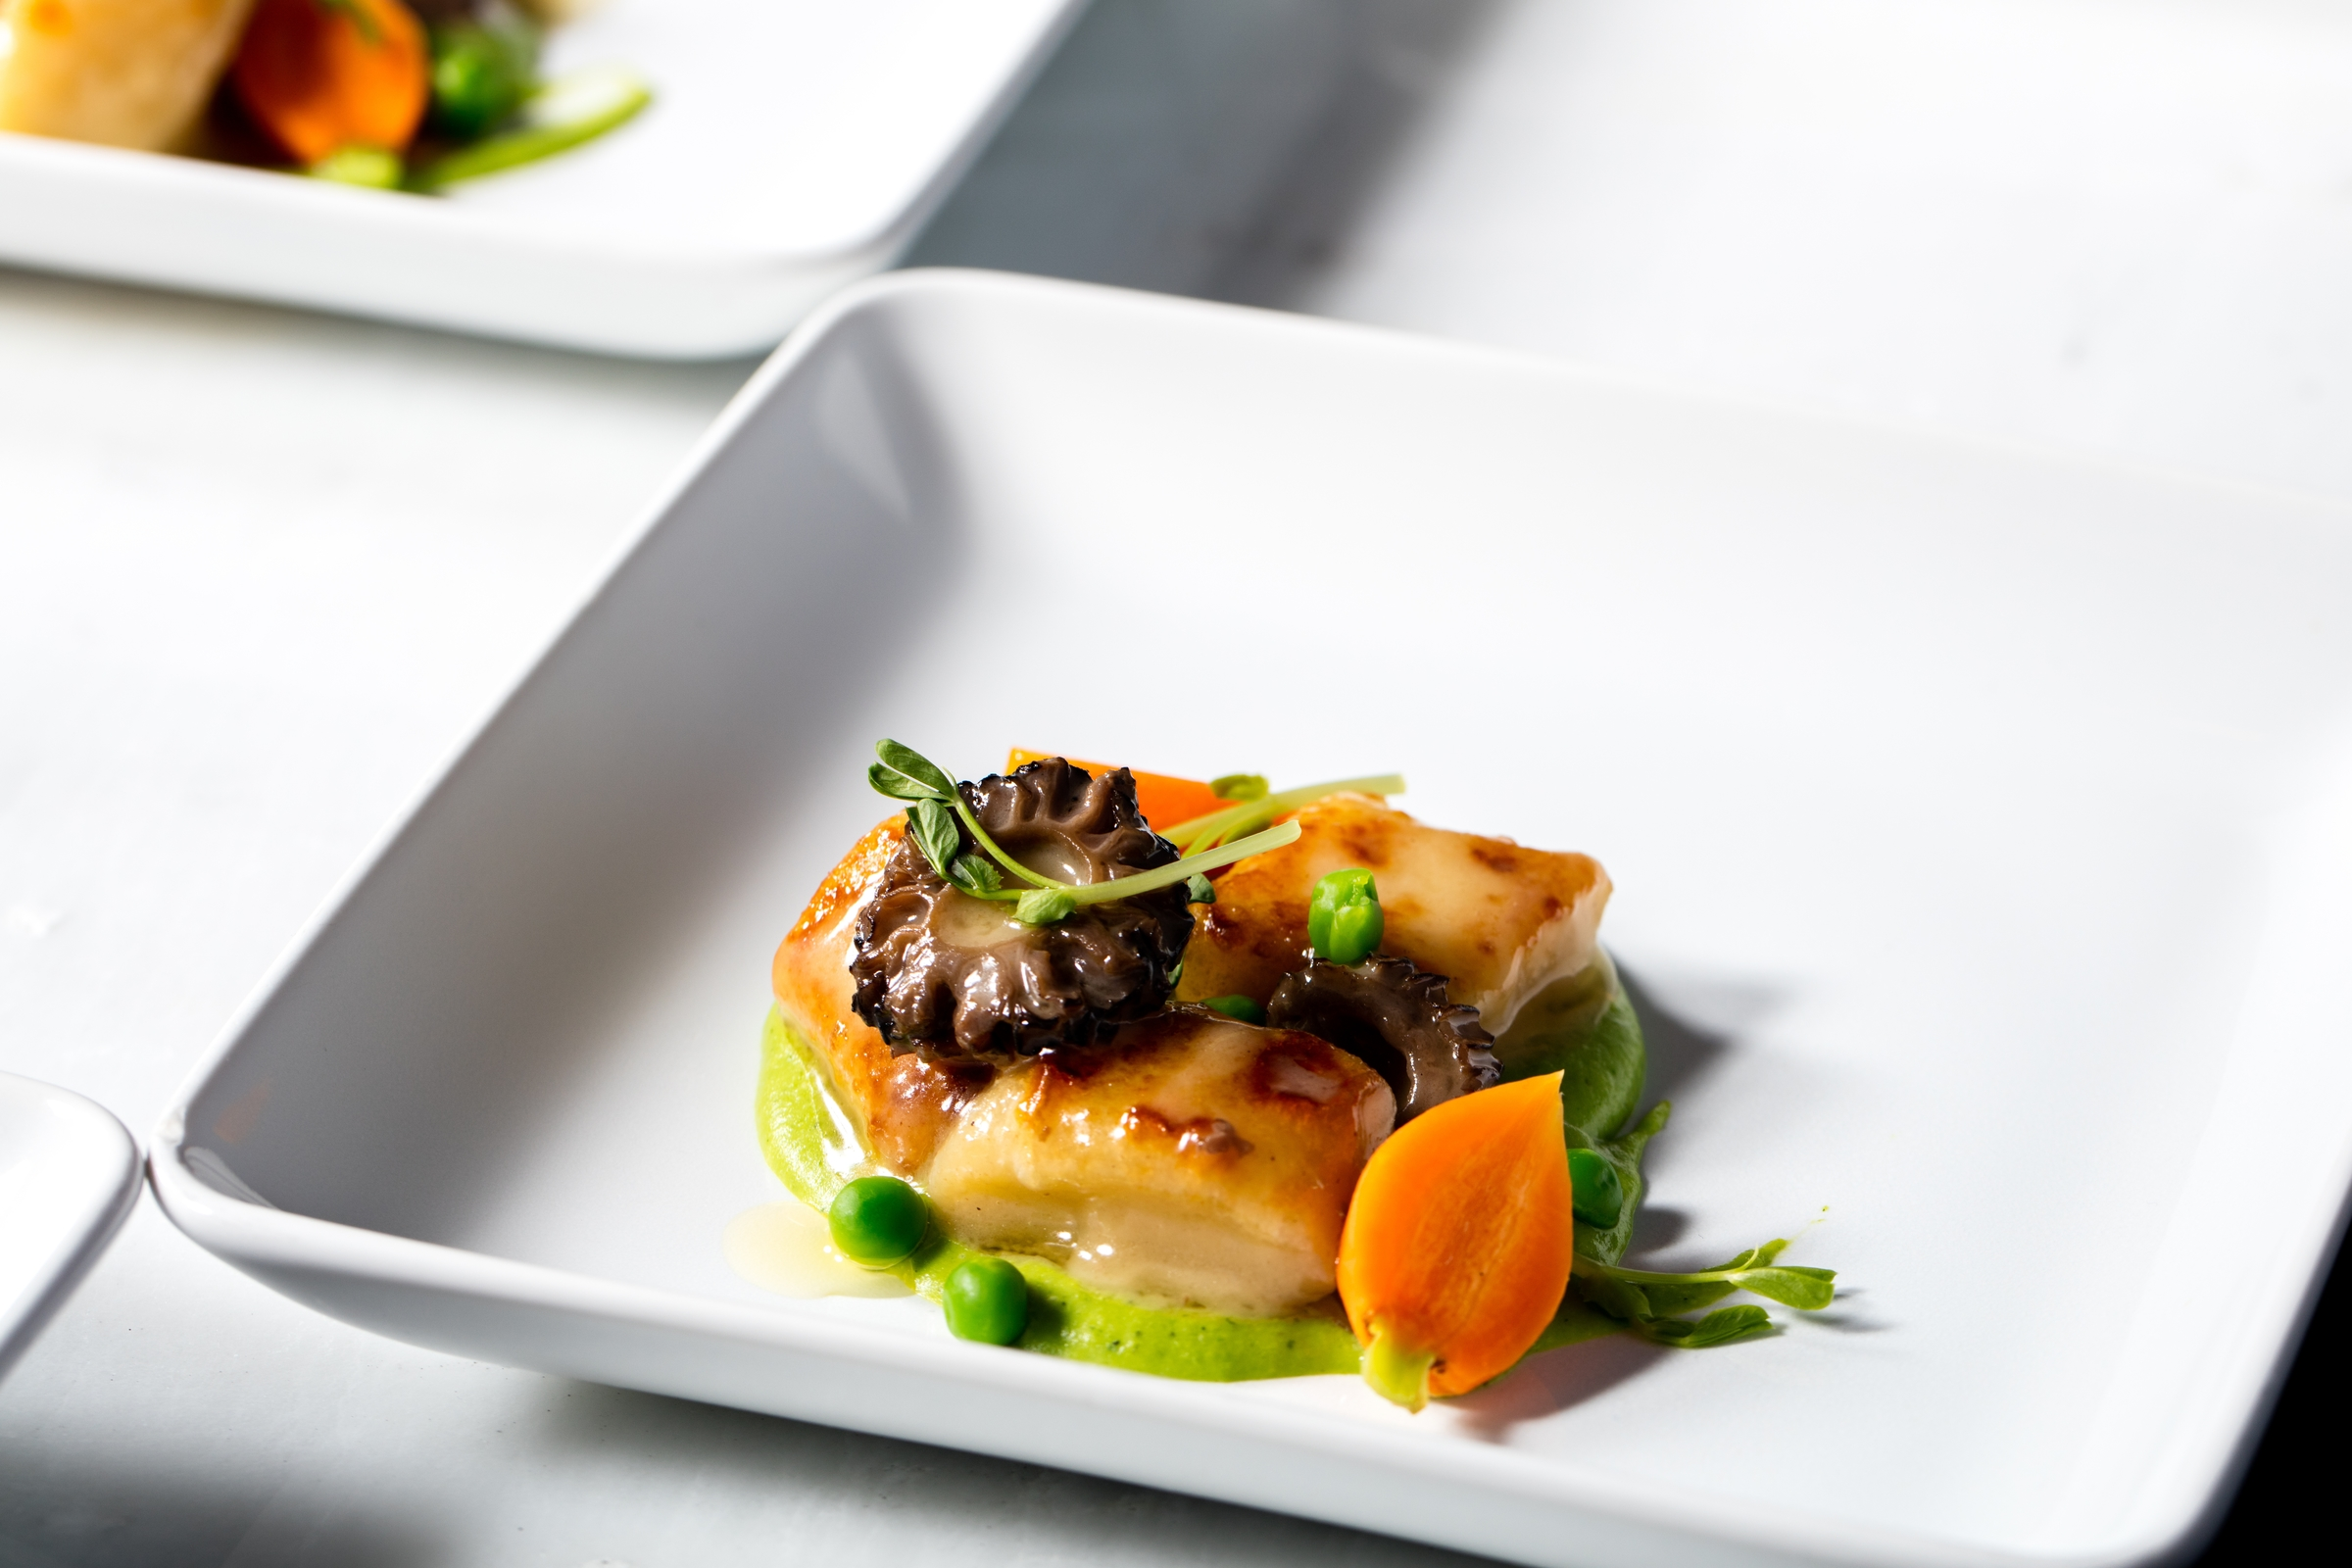 House Rolled Gnocchi with Morels, Peas and Thumbelina Carrots